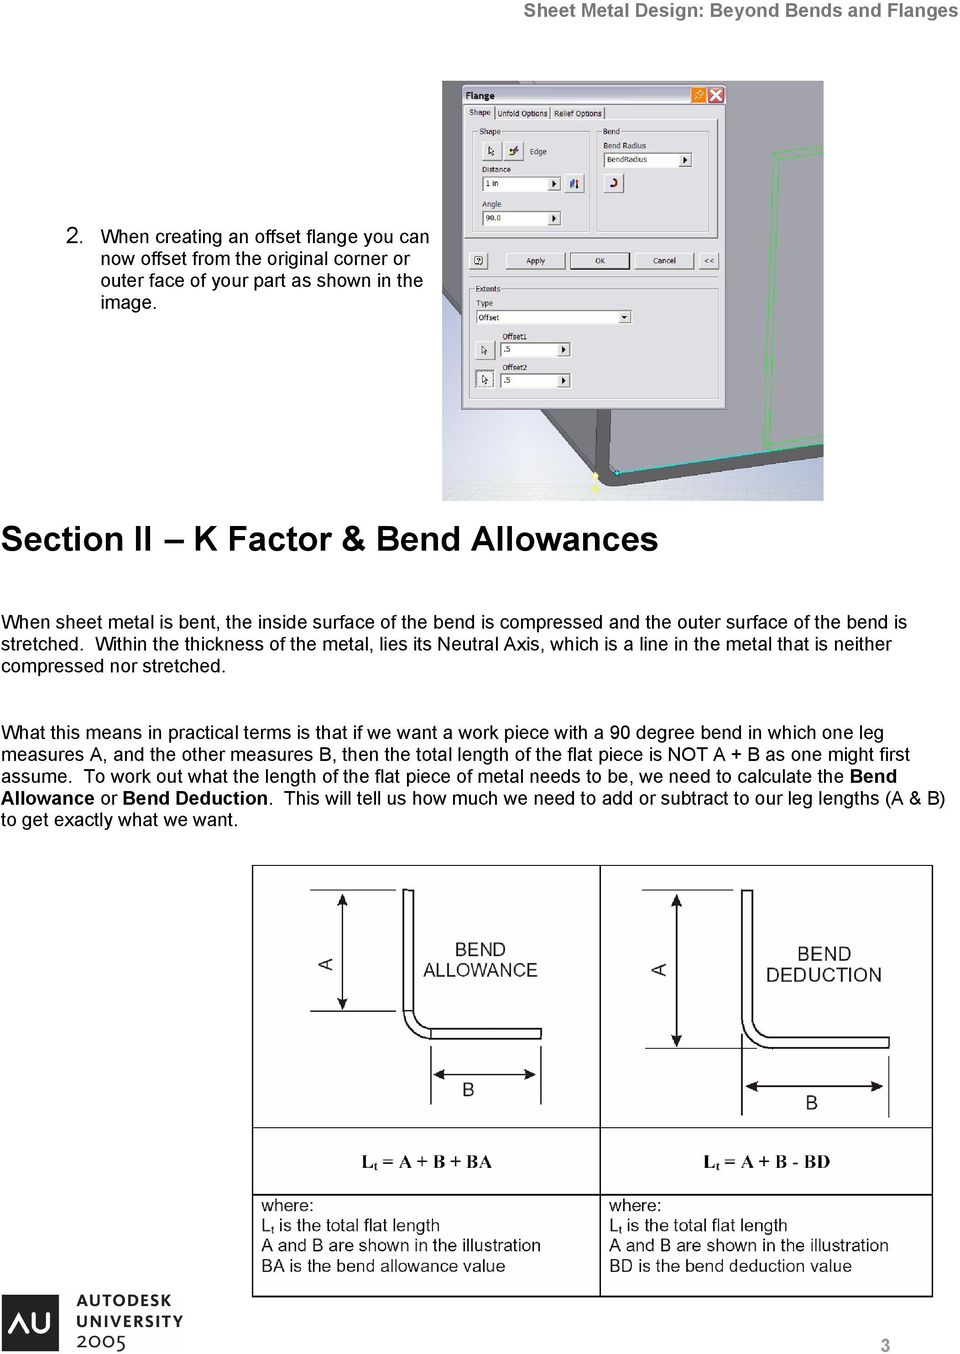 Sheet Metal Design: Beyond Bends and Flanges - PDF